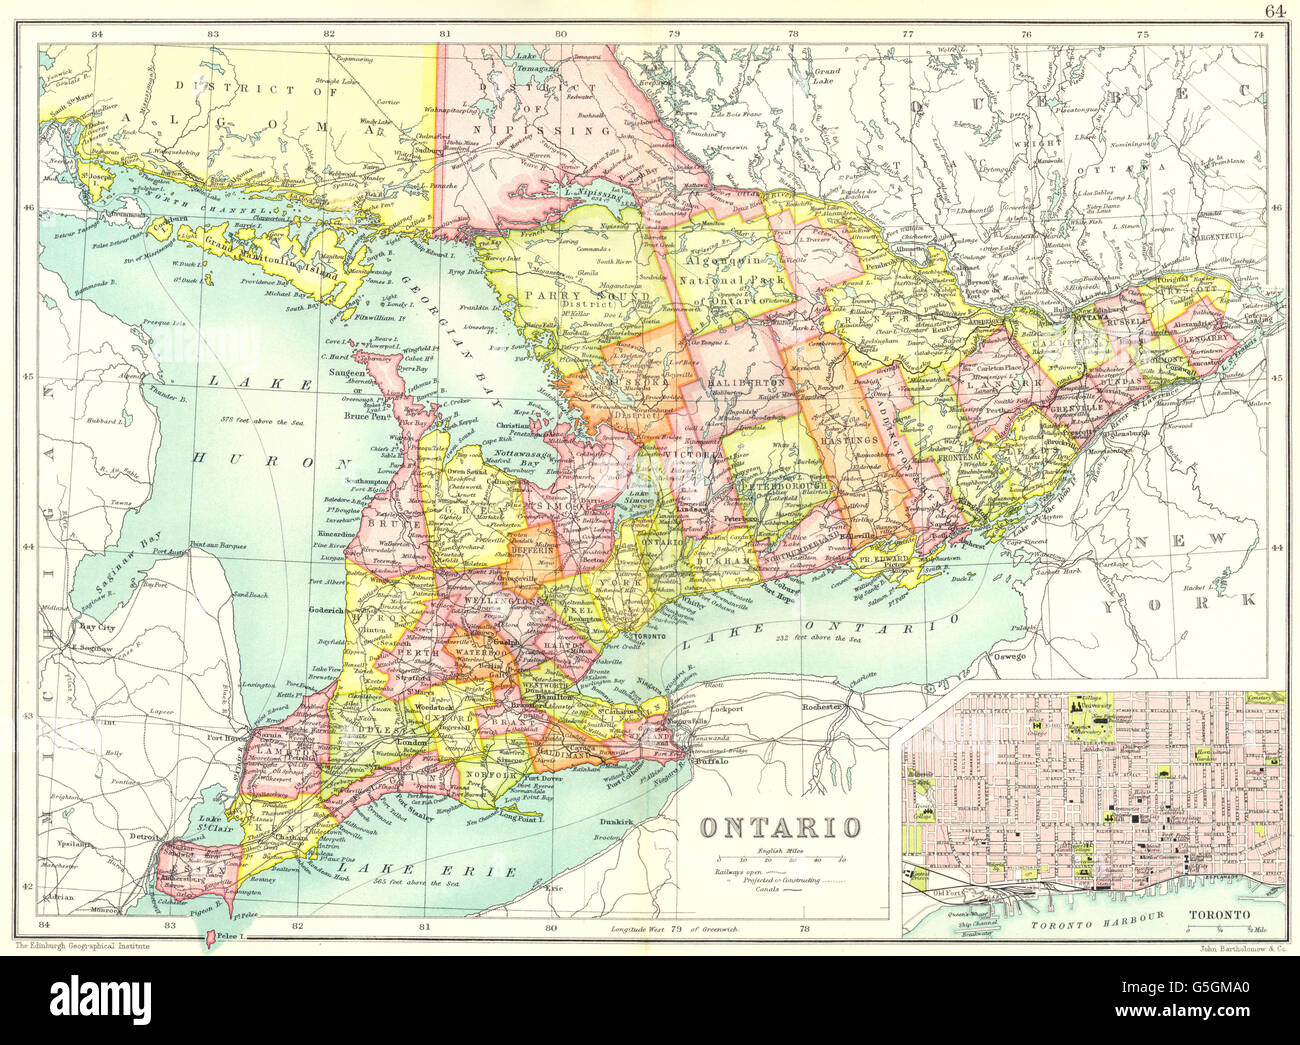 ONTARIO Showing Counties Inset Map Of Toronto Canada Cassells - Toronto canada map